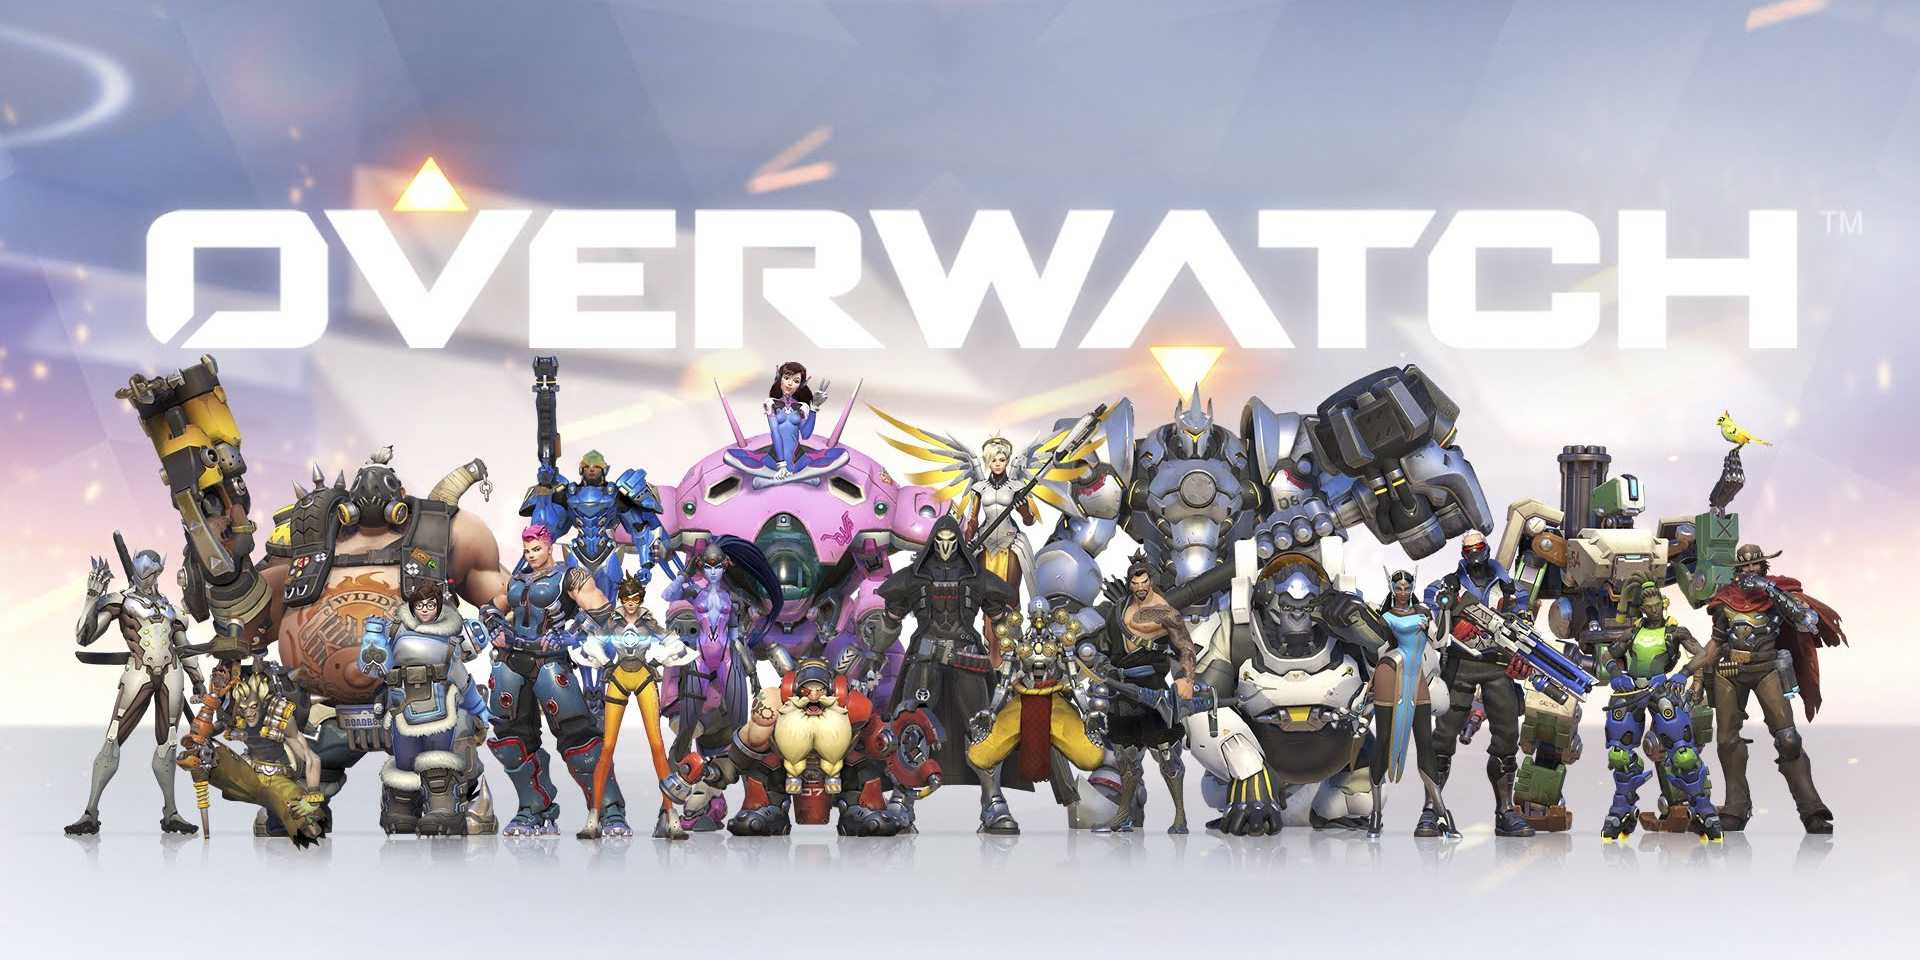 Blizzard Reveals Overwatch Early Access And General